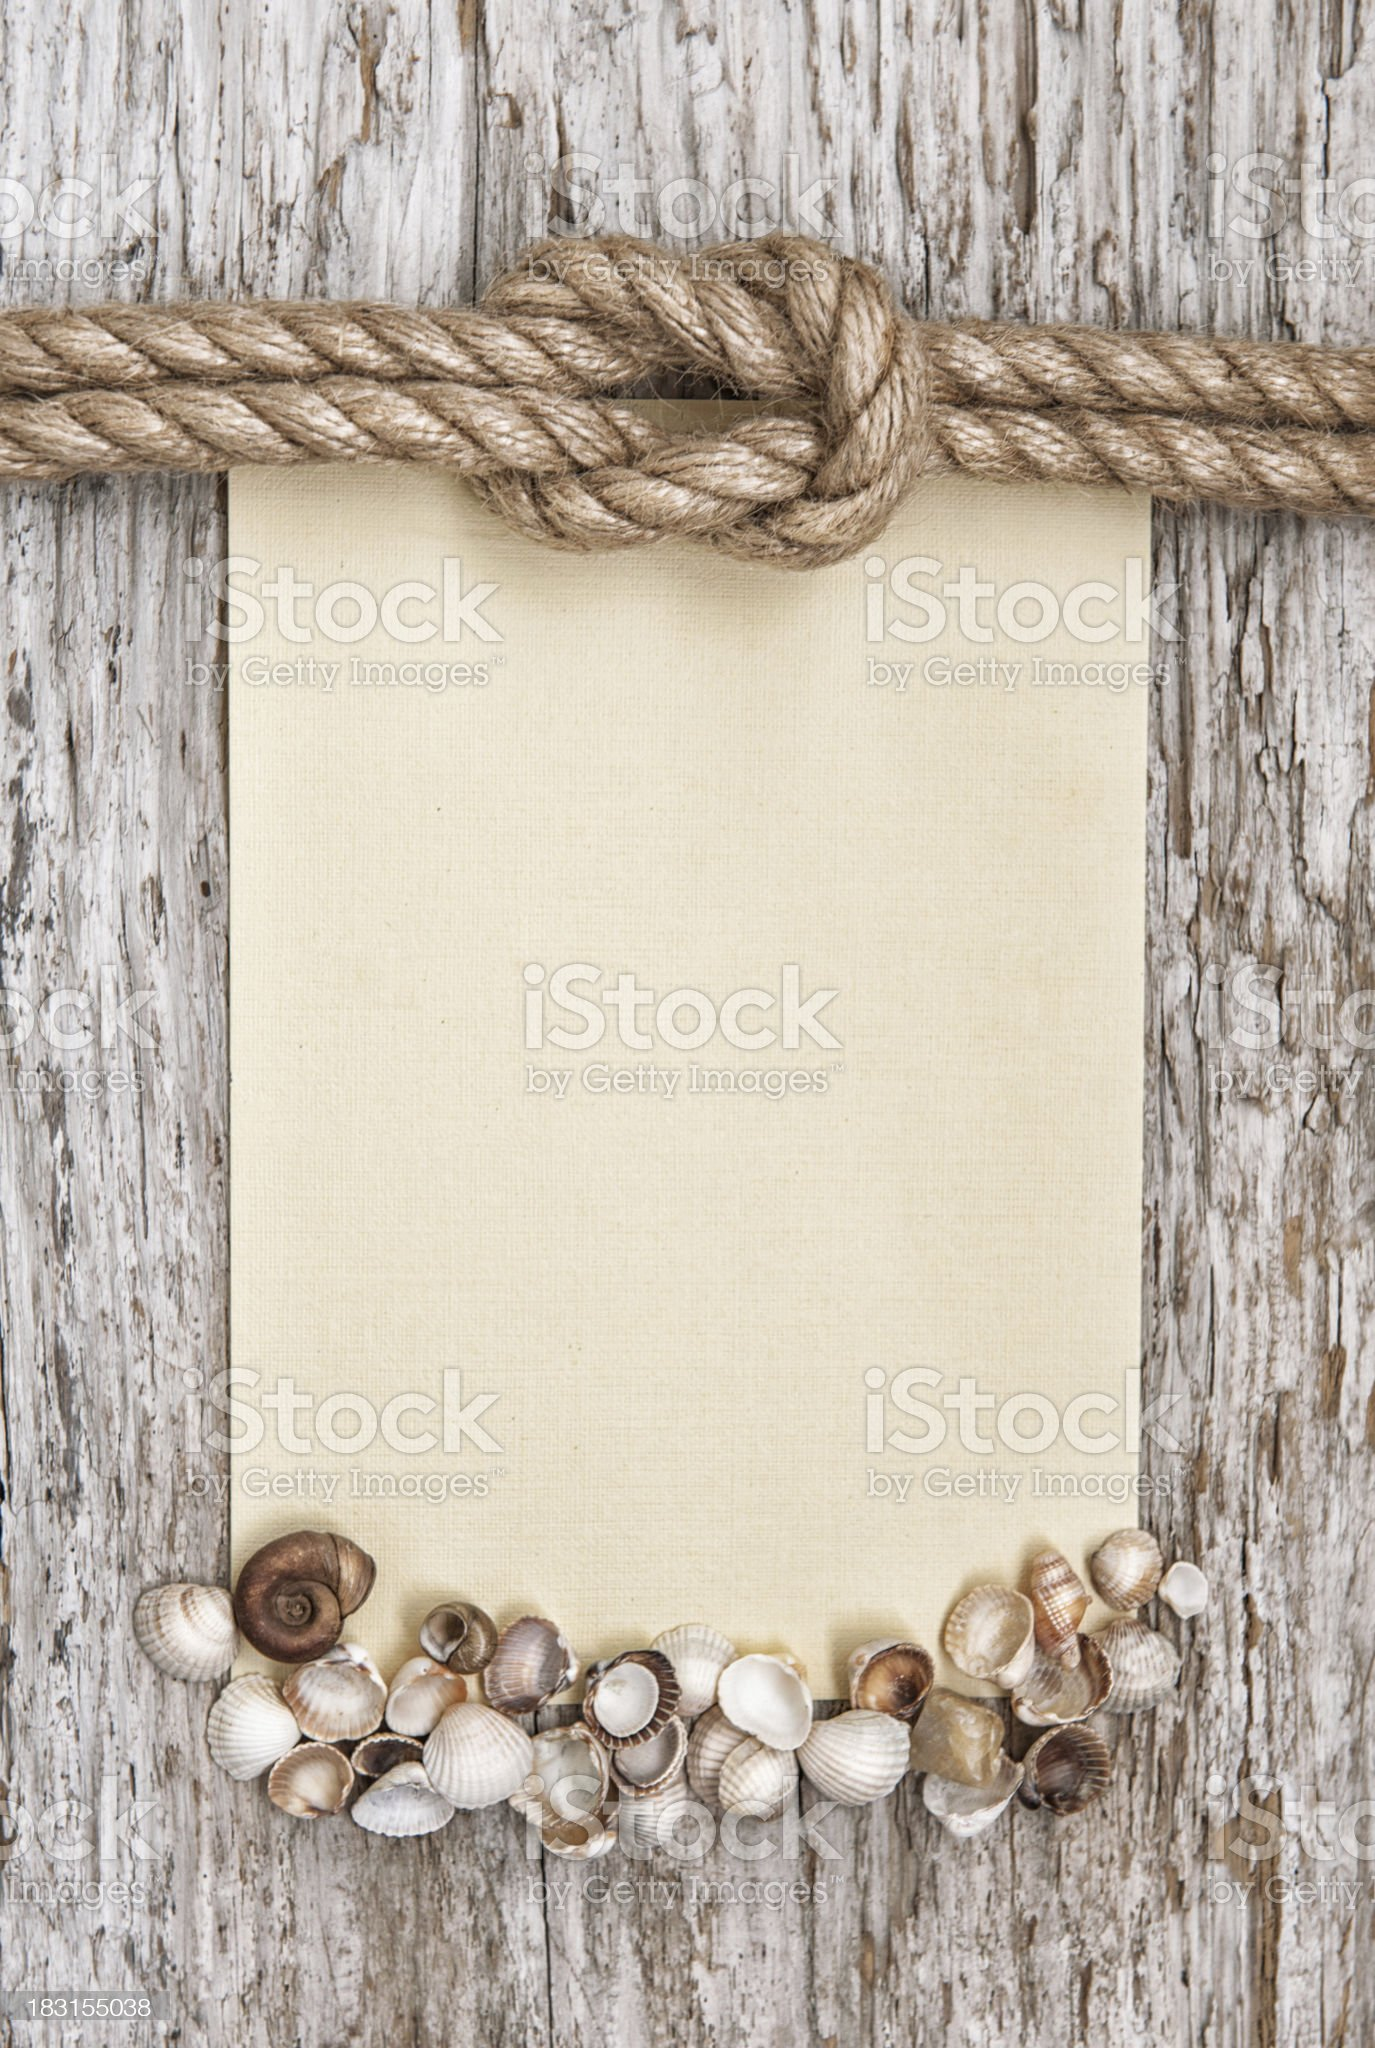 Ship rope, canvas, sea shells and wood background royalty-free stock photo